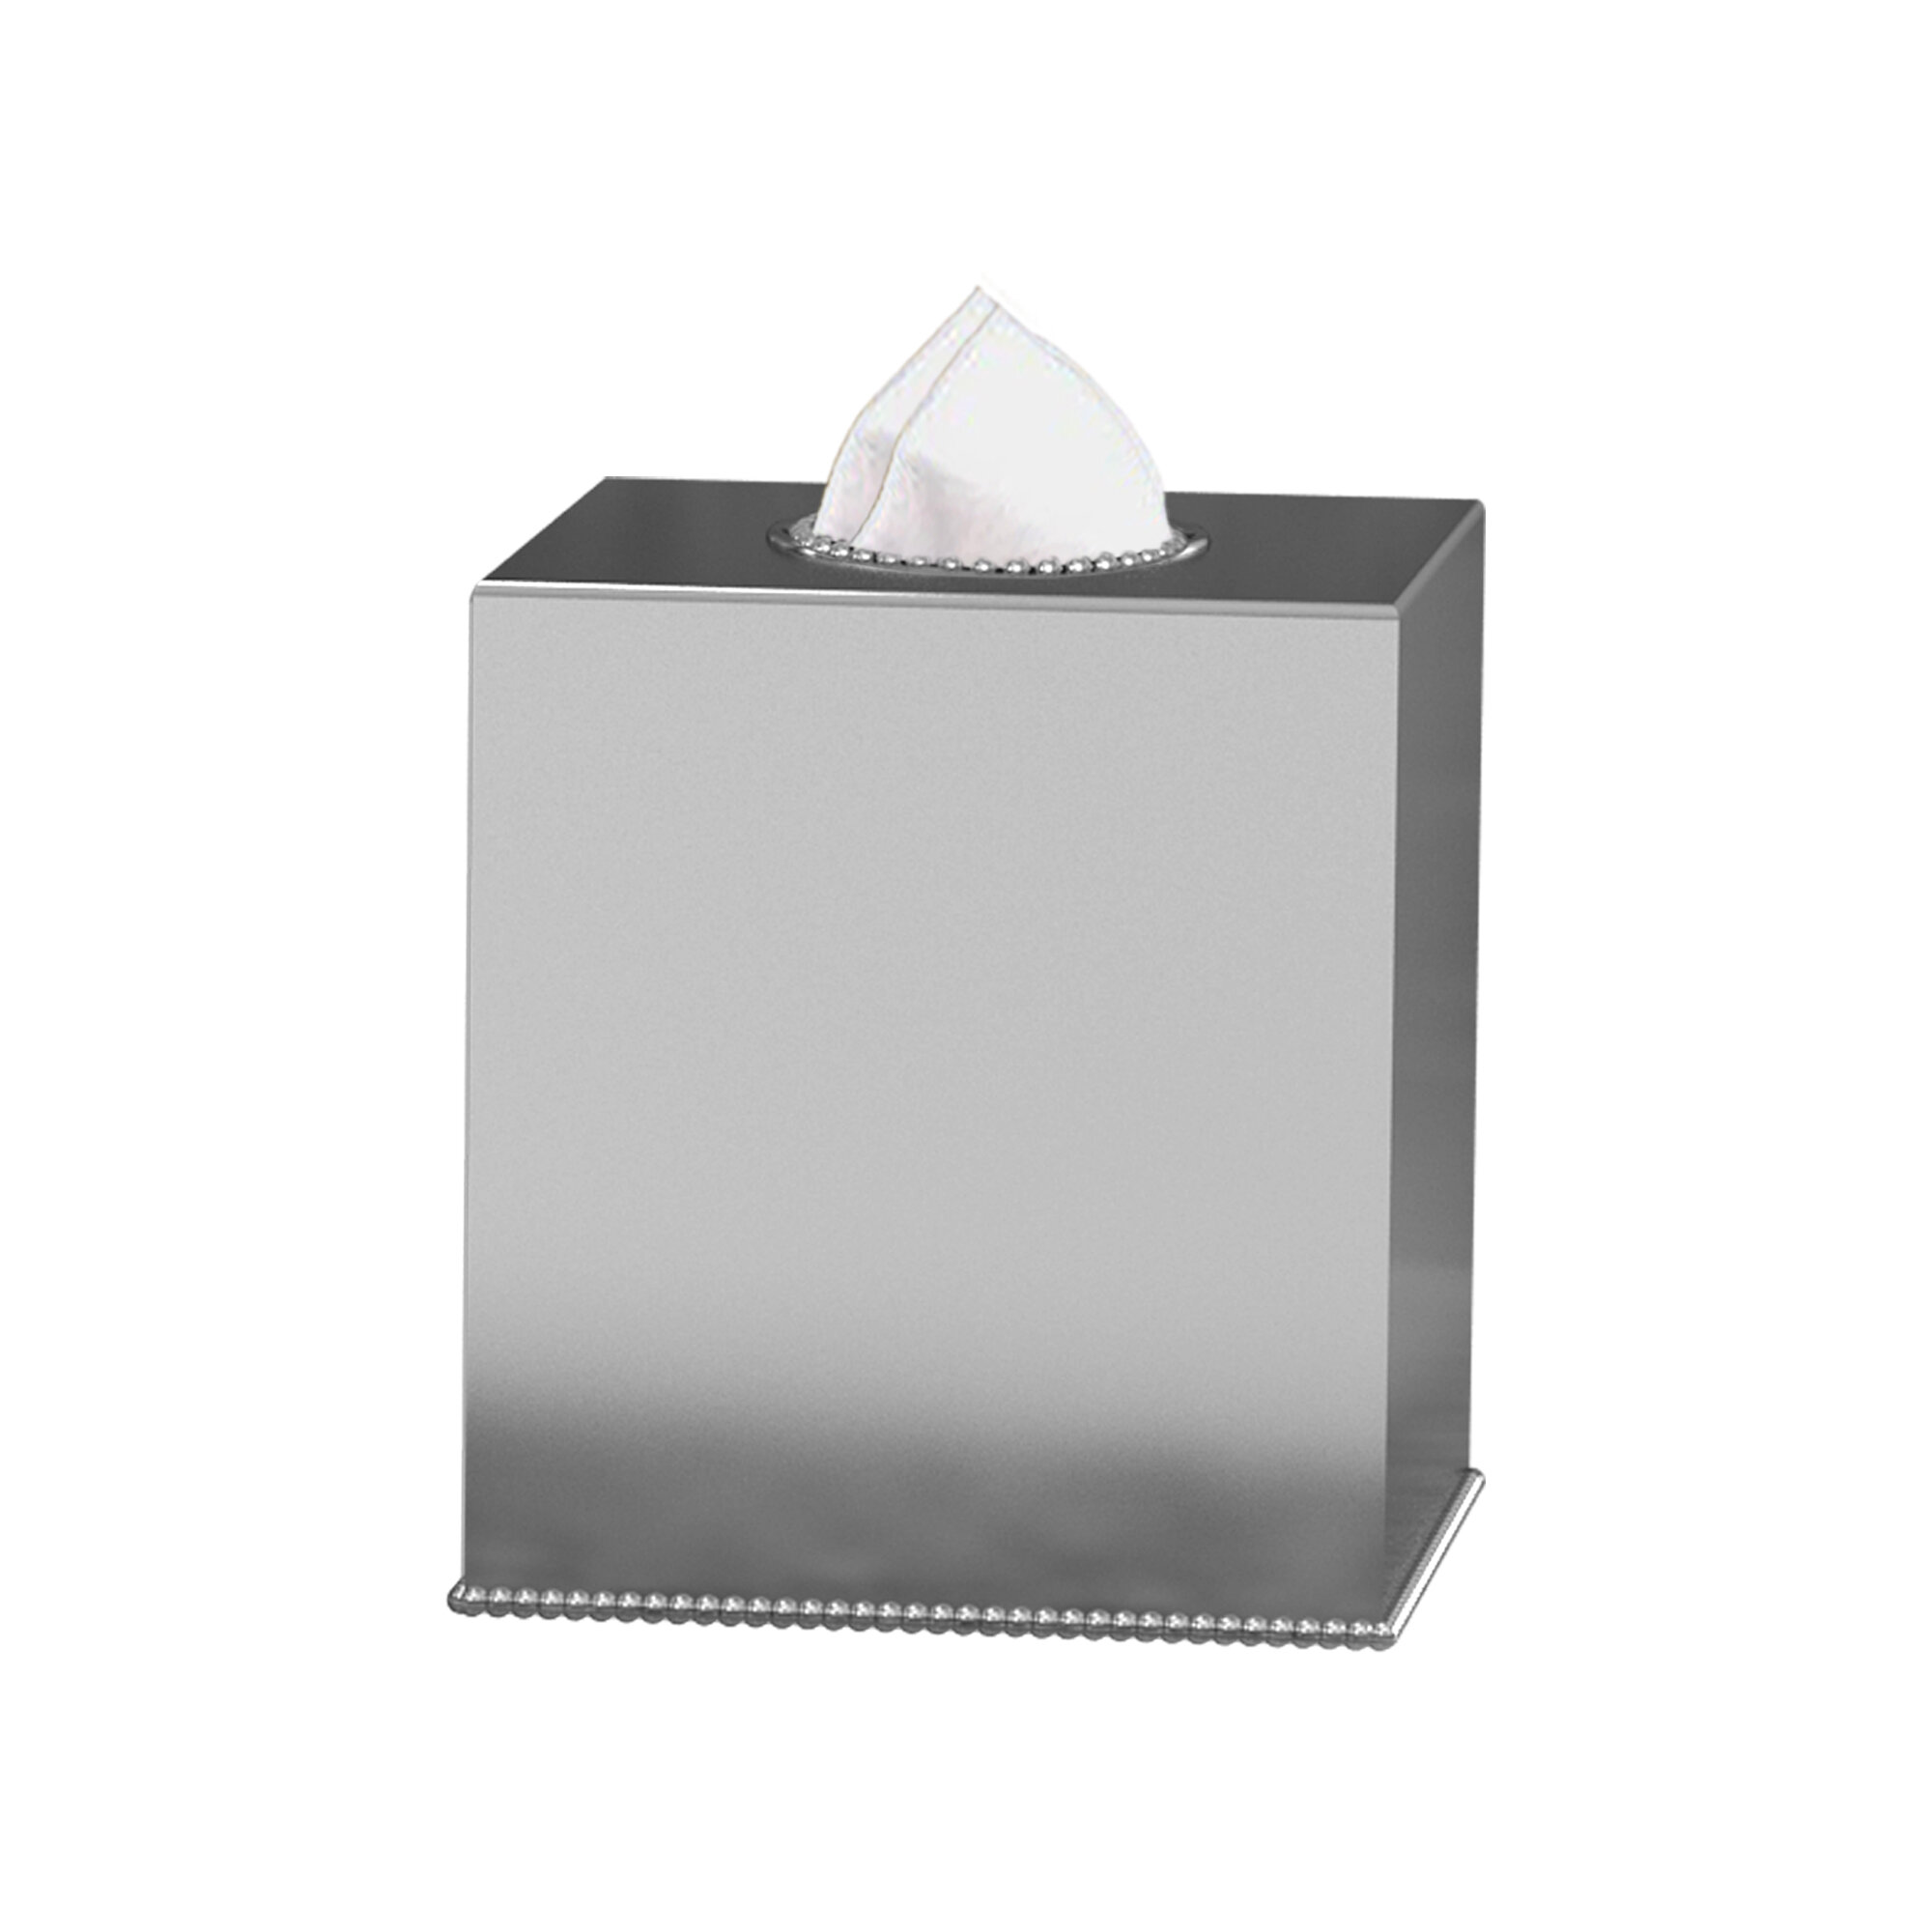 Steeltek Pewter Veil Boutique Tissue Box Cover Brushed Nickel Look BS-1009 New